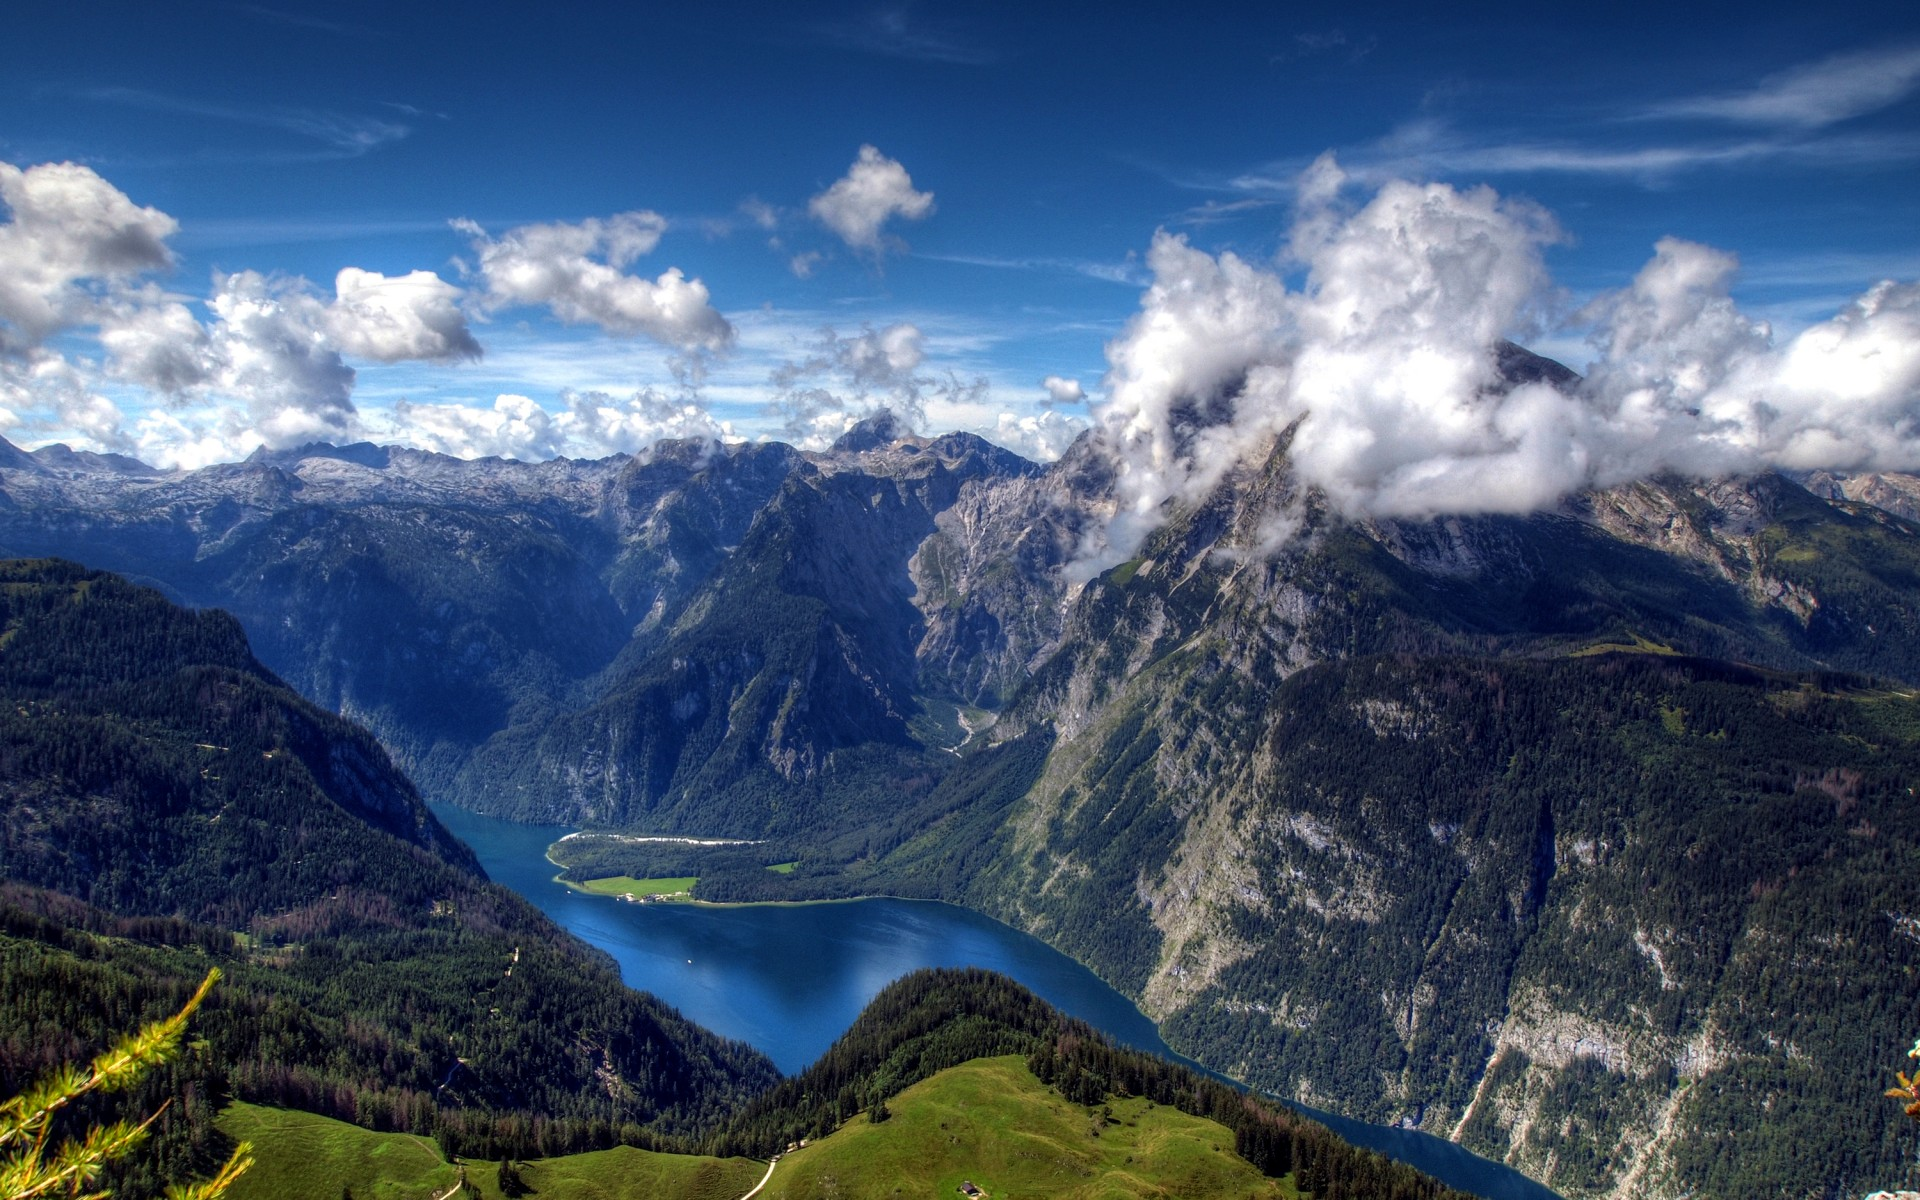 Königssee The Bavarian Alps, Wallpaper Lake Königssee, Watzmann Mountain, Bavarian Alps, HD ...